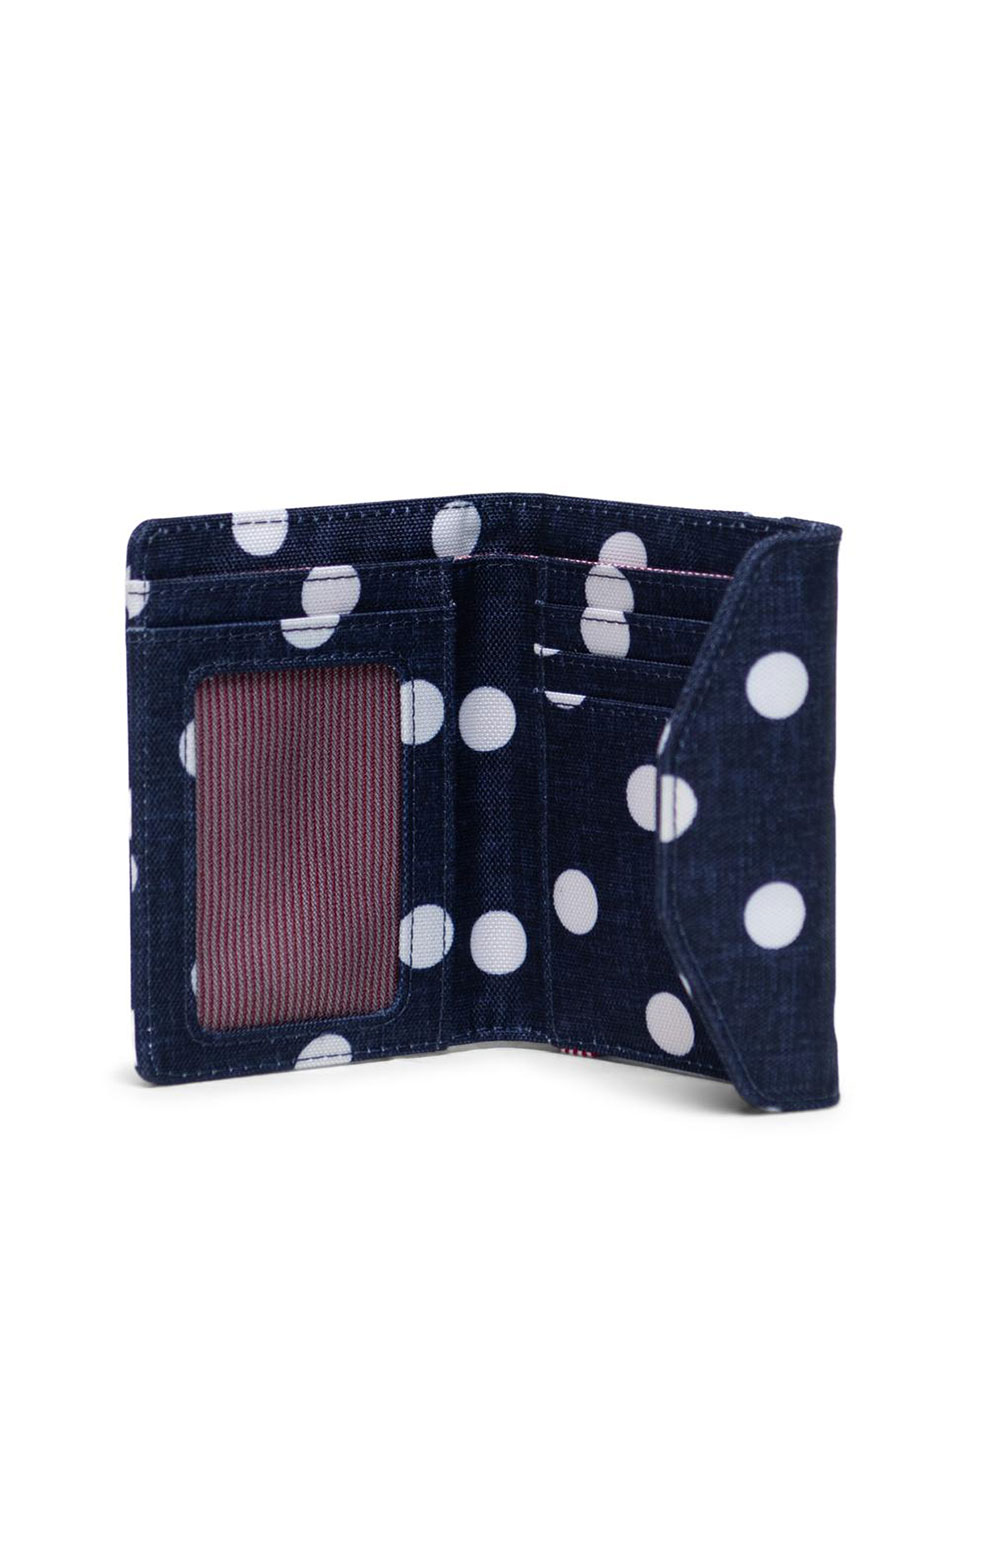 Orion Wallet - Polka Dot Crosshatch/Peacoat Small/Tropical Hibiscus 4